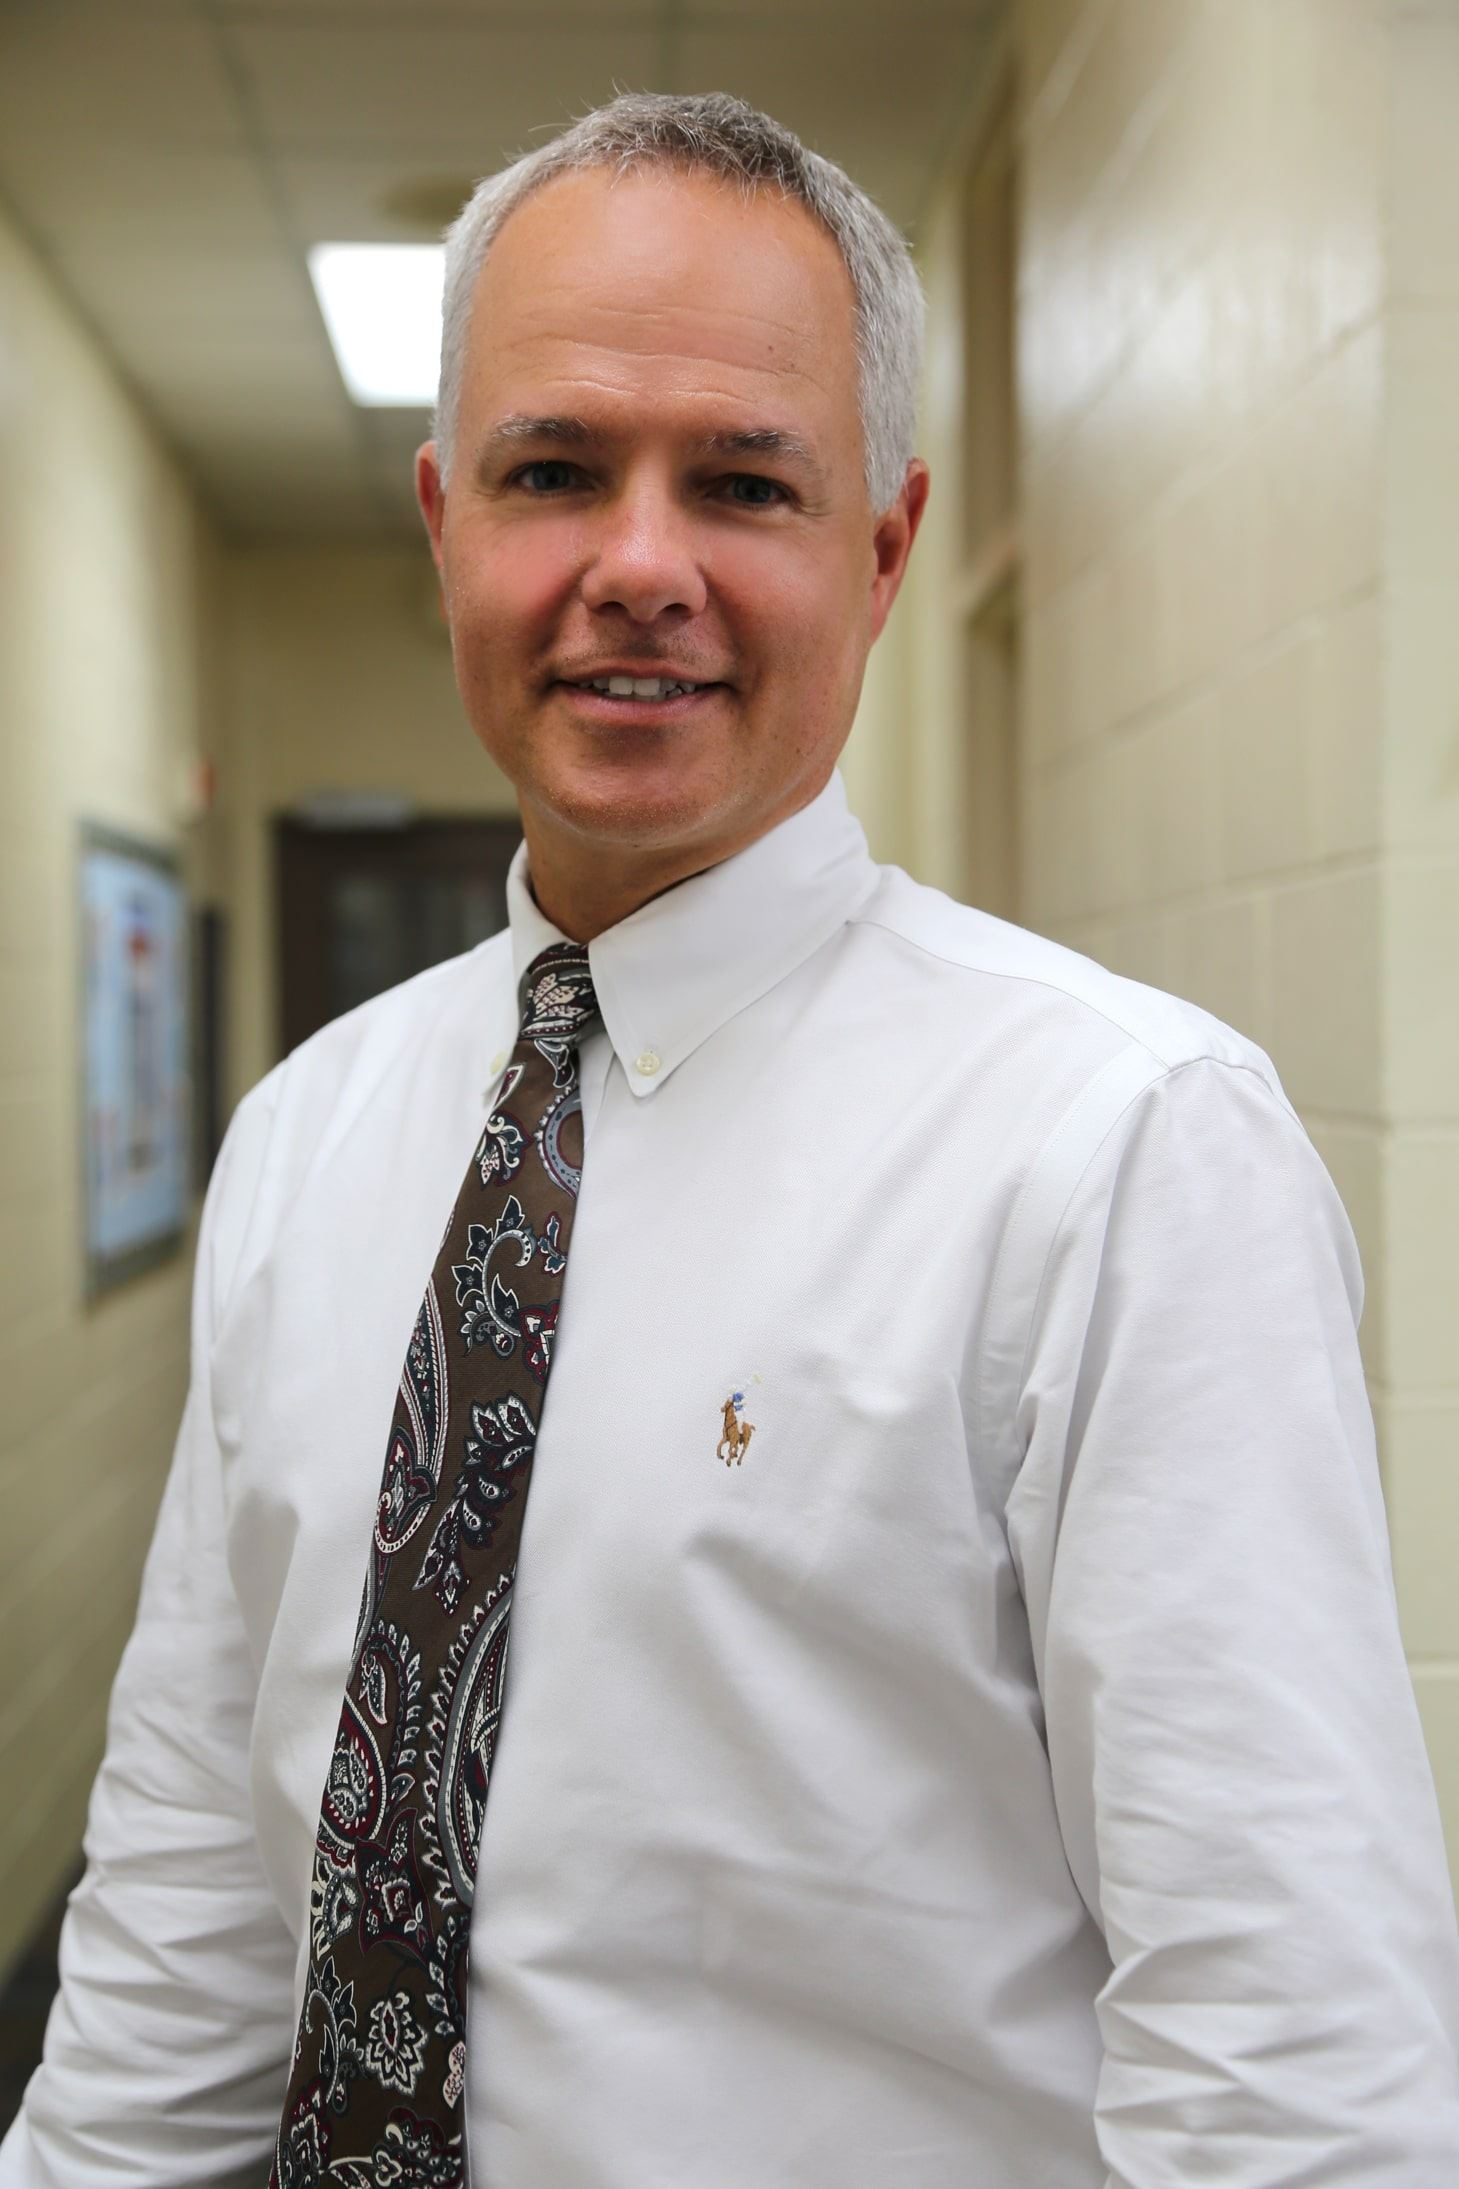 Image of Kevin Conklin, Principal.